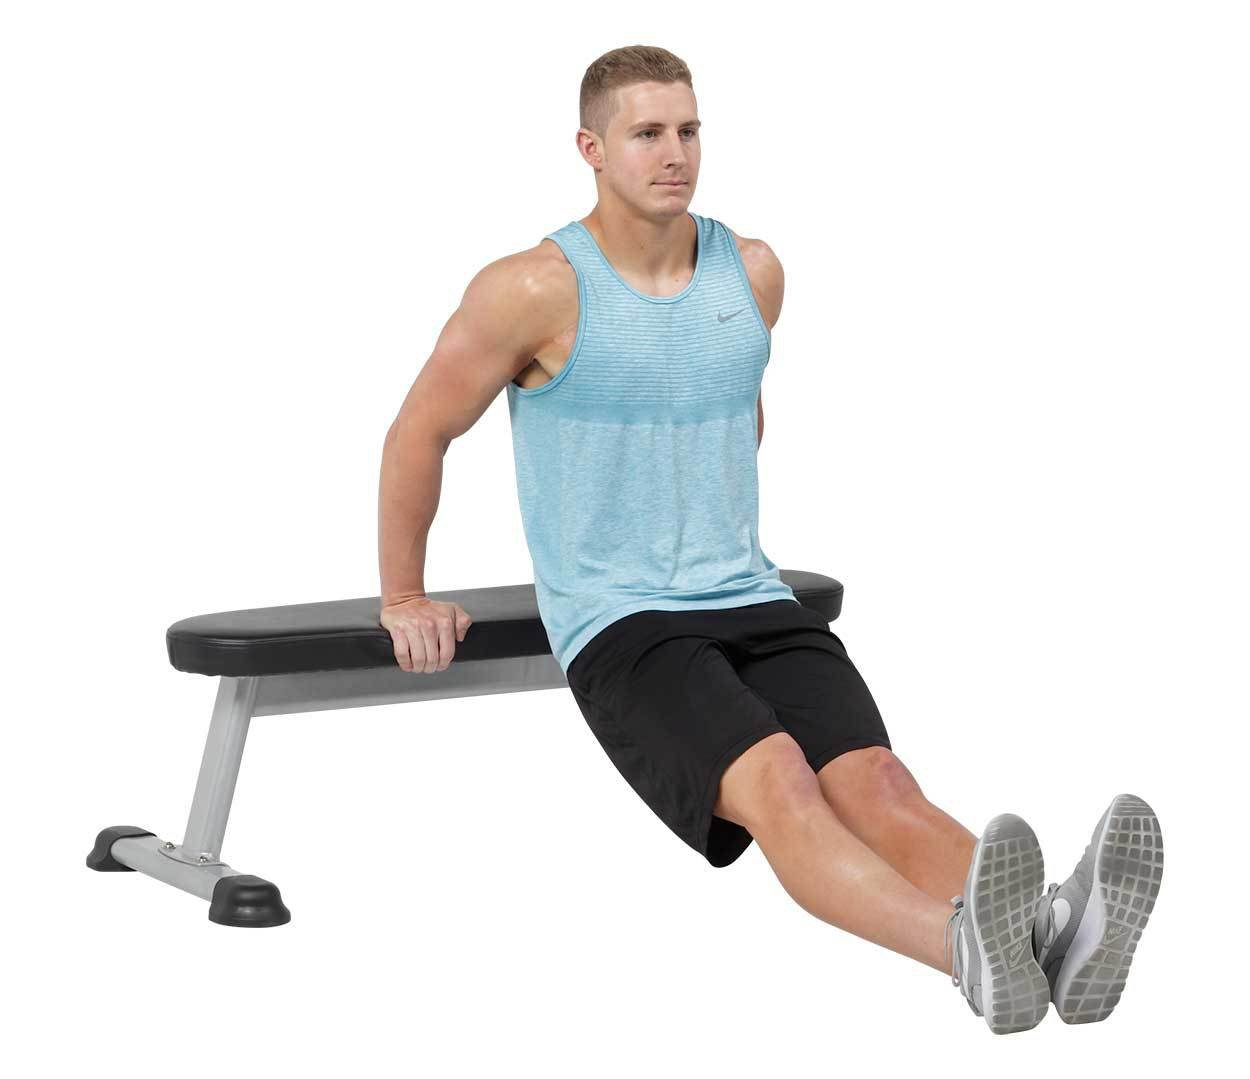 Best Workout Technique #7 - Bench Dip Exercise